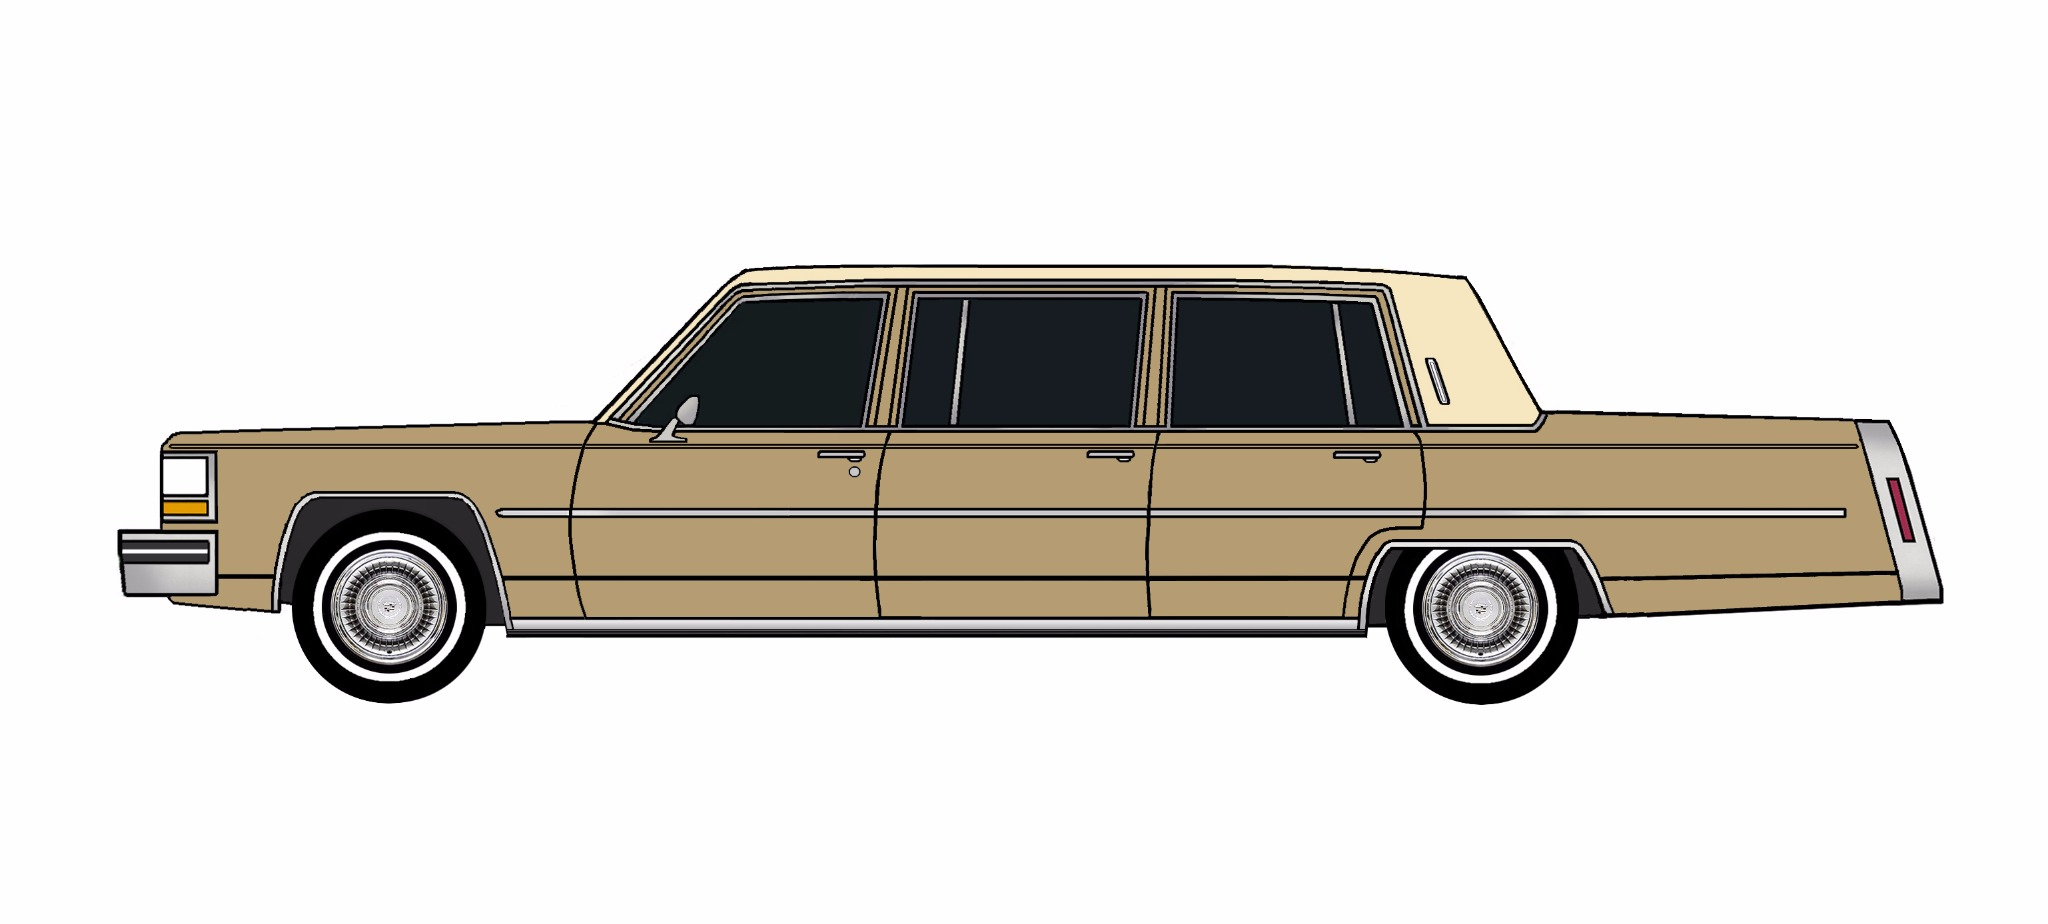 1980 Cadillac Fleetwood Funeral Limo BRONZE